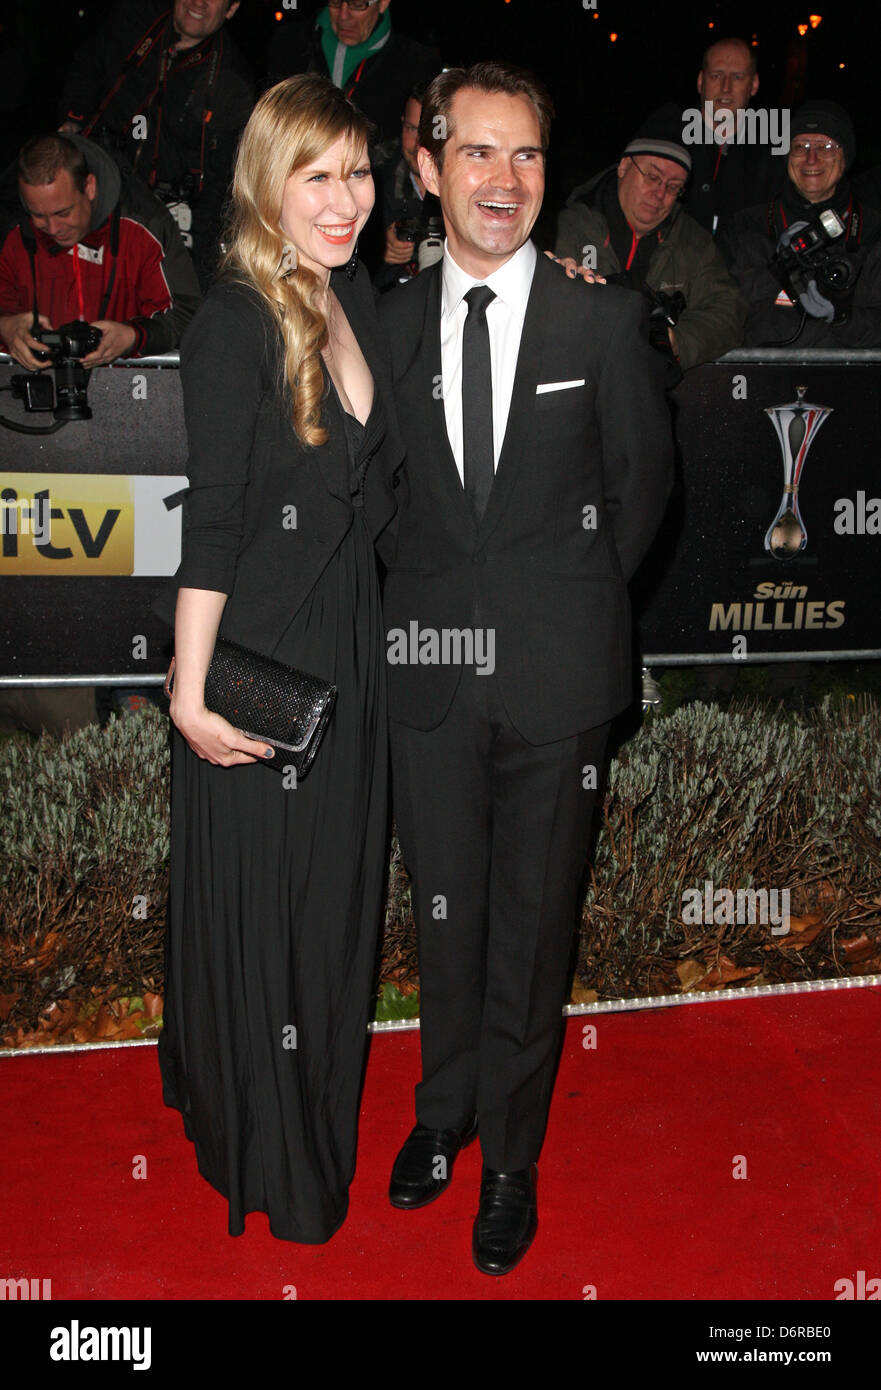 Jimmy Carr Girlfriend Karoline Copping High Resolution Stock Photography And Images Alamy Karoline copping is a help us build our profile of karoline copping! https www alamy com stock photo jimmy carr and girlfriend karoline copping the sun military awards 55832952 html